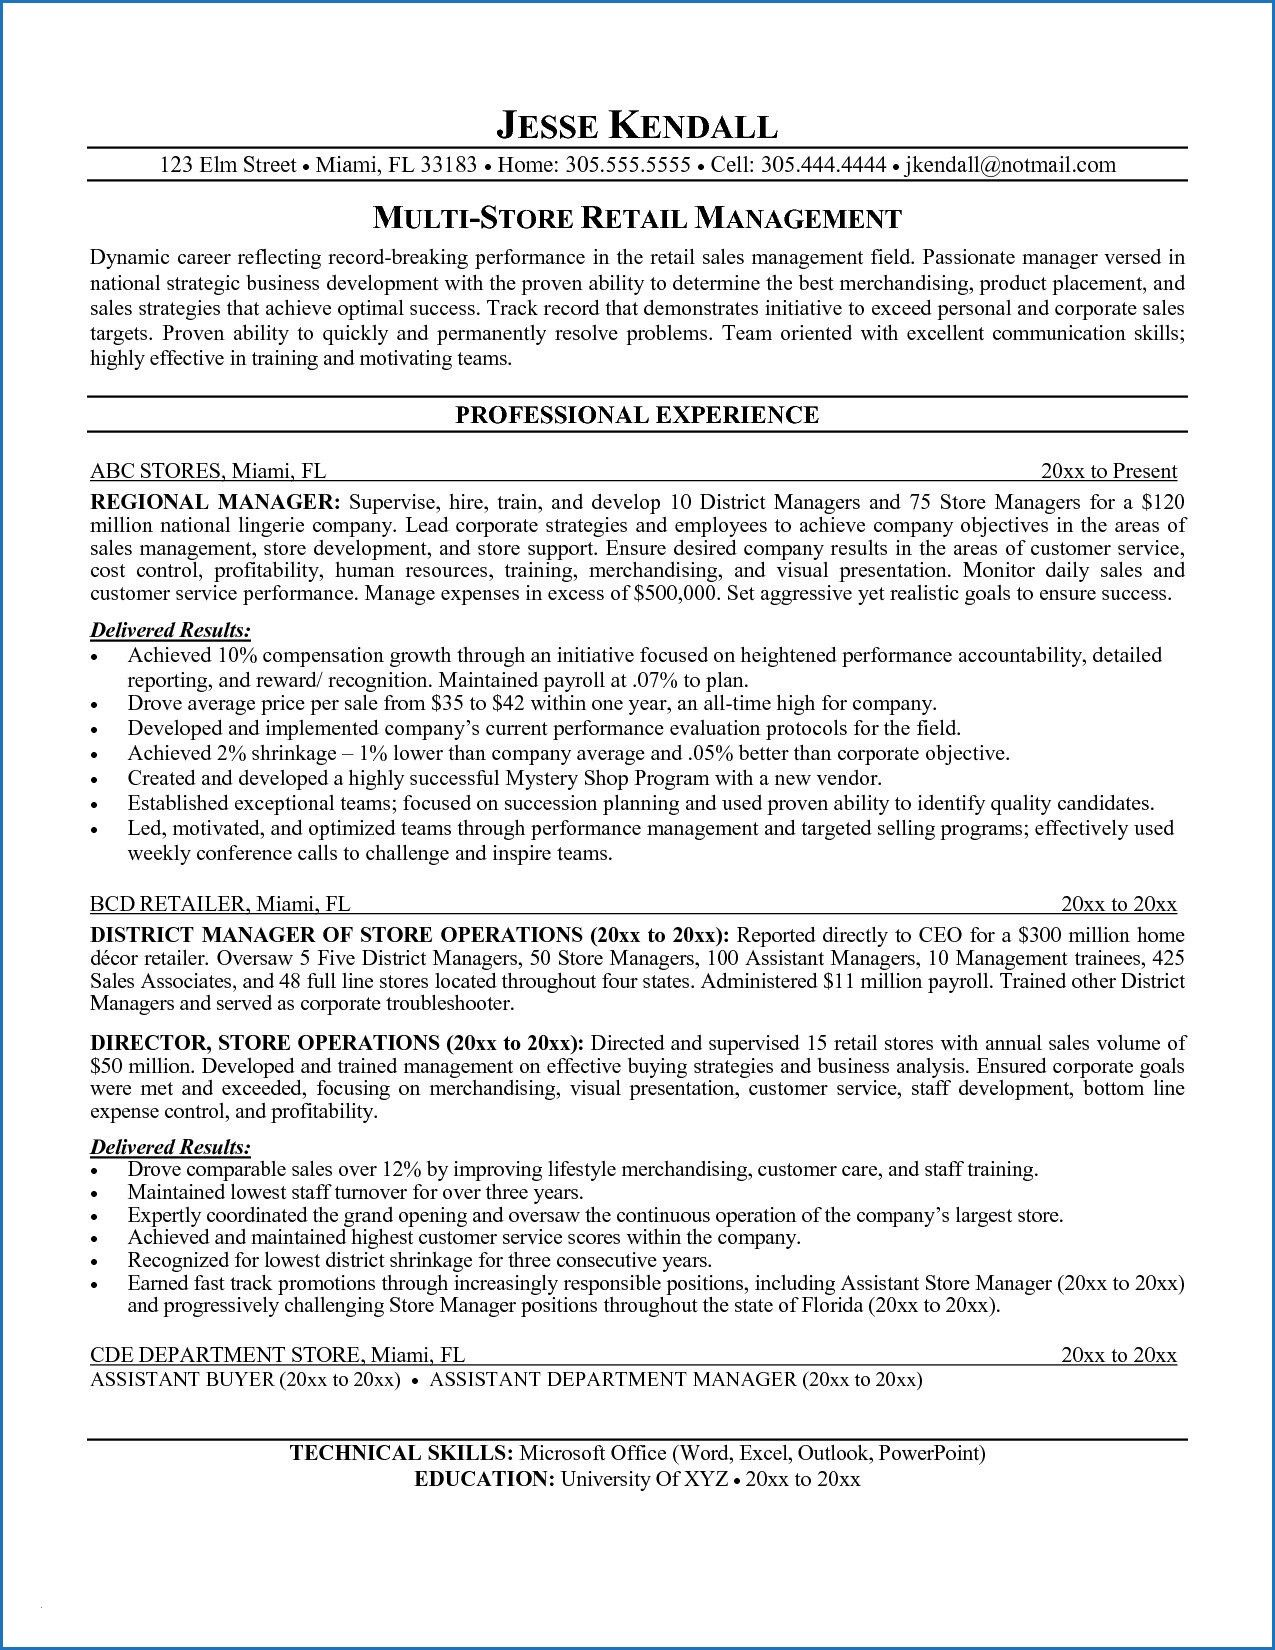 7a830ffefab4bbdefb7996b7479696bb Template Cover Letter Medical Istant Store Manager Resume Description And Objective Examples Wyvfdi on